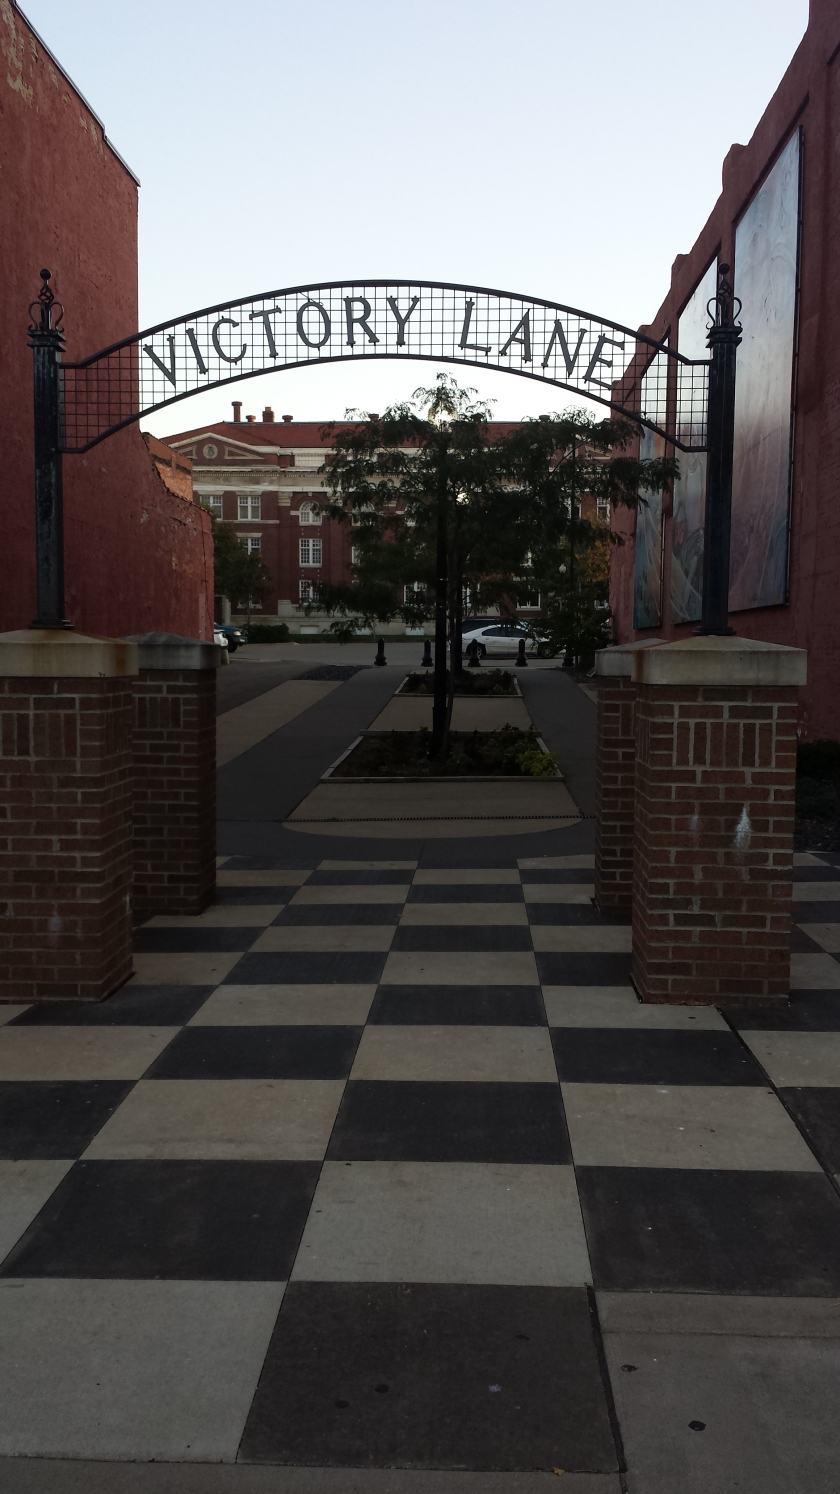 Victory Lane, between Restaurant One Five One and Bella Notte in Downtown Jackson